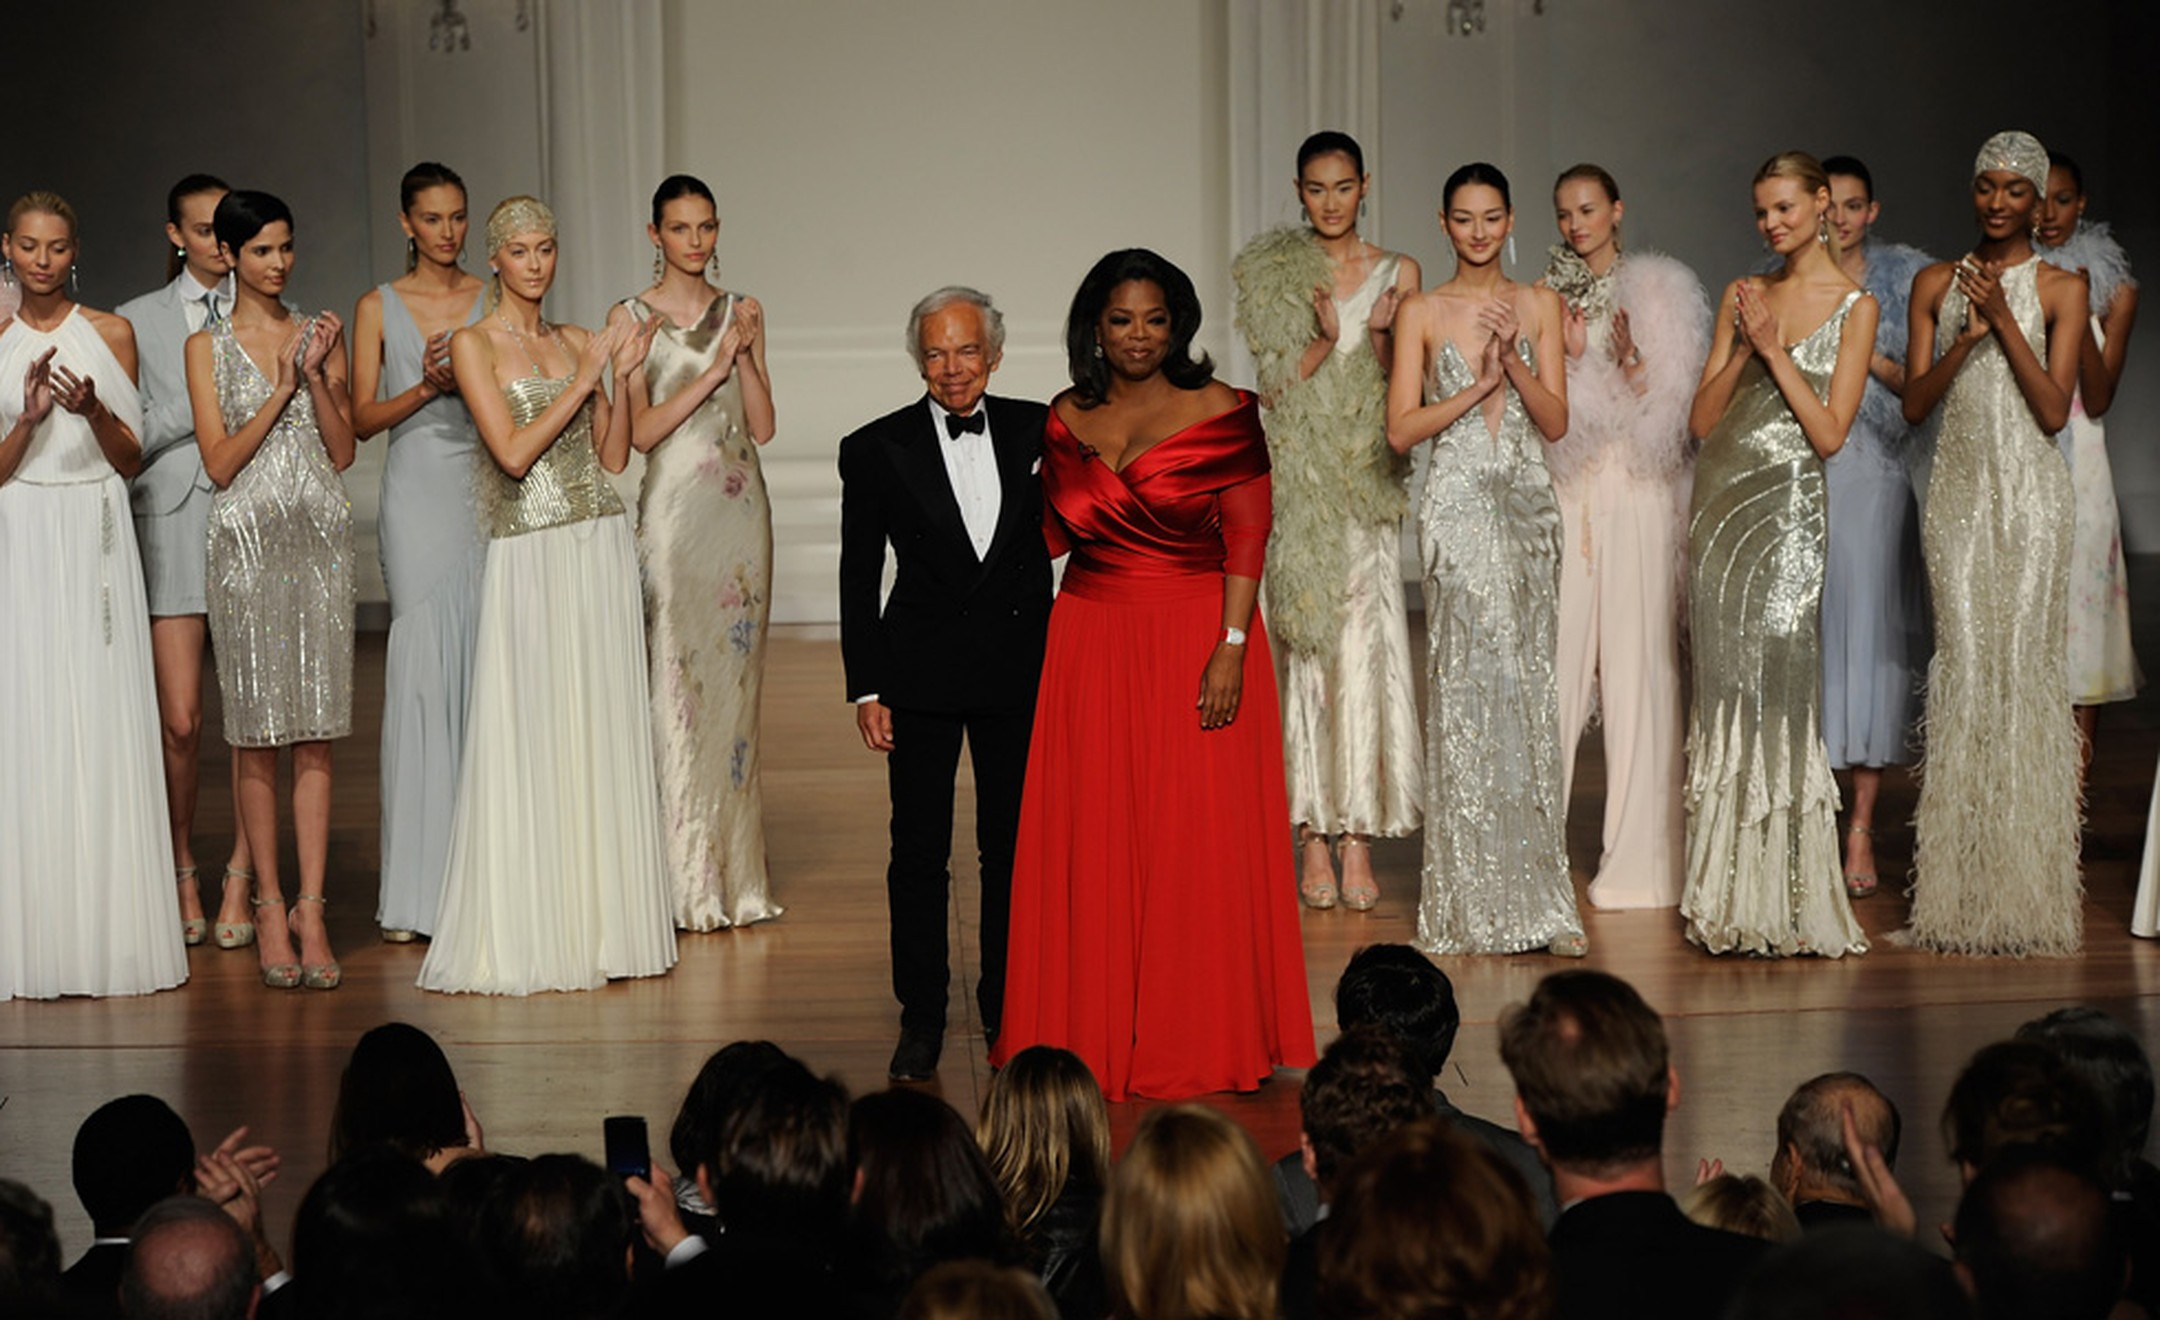 Ralph Lauren and Oprah Winfrey at the Lincoln Centre Fundraiser in New York.